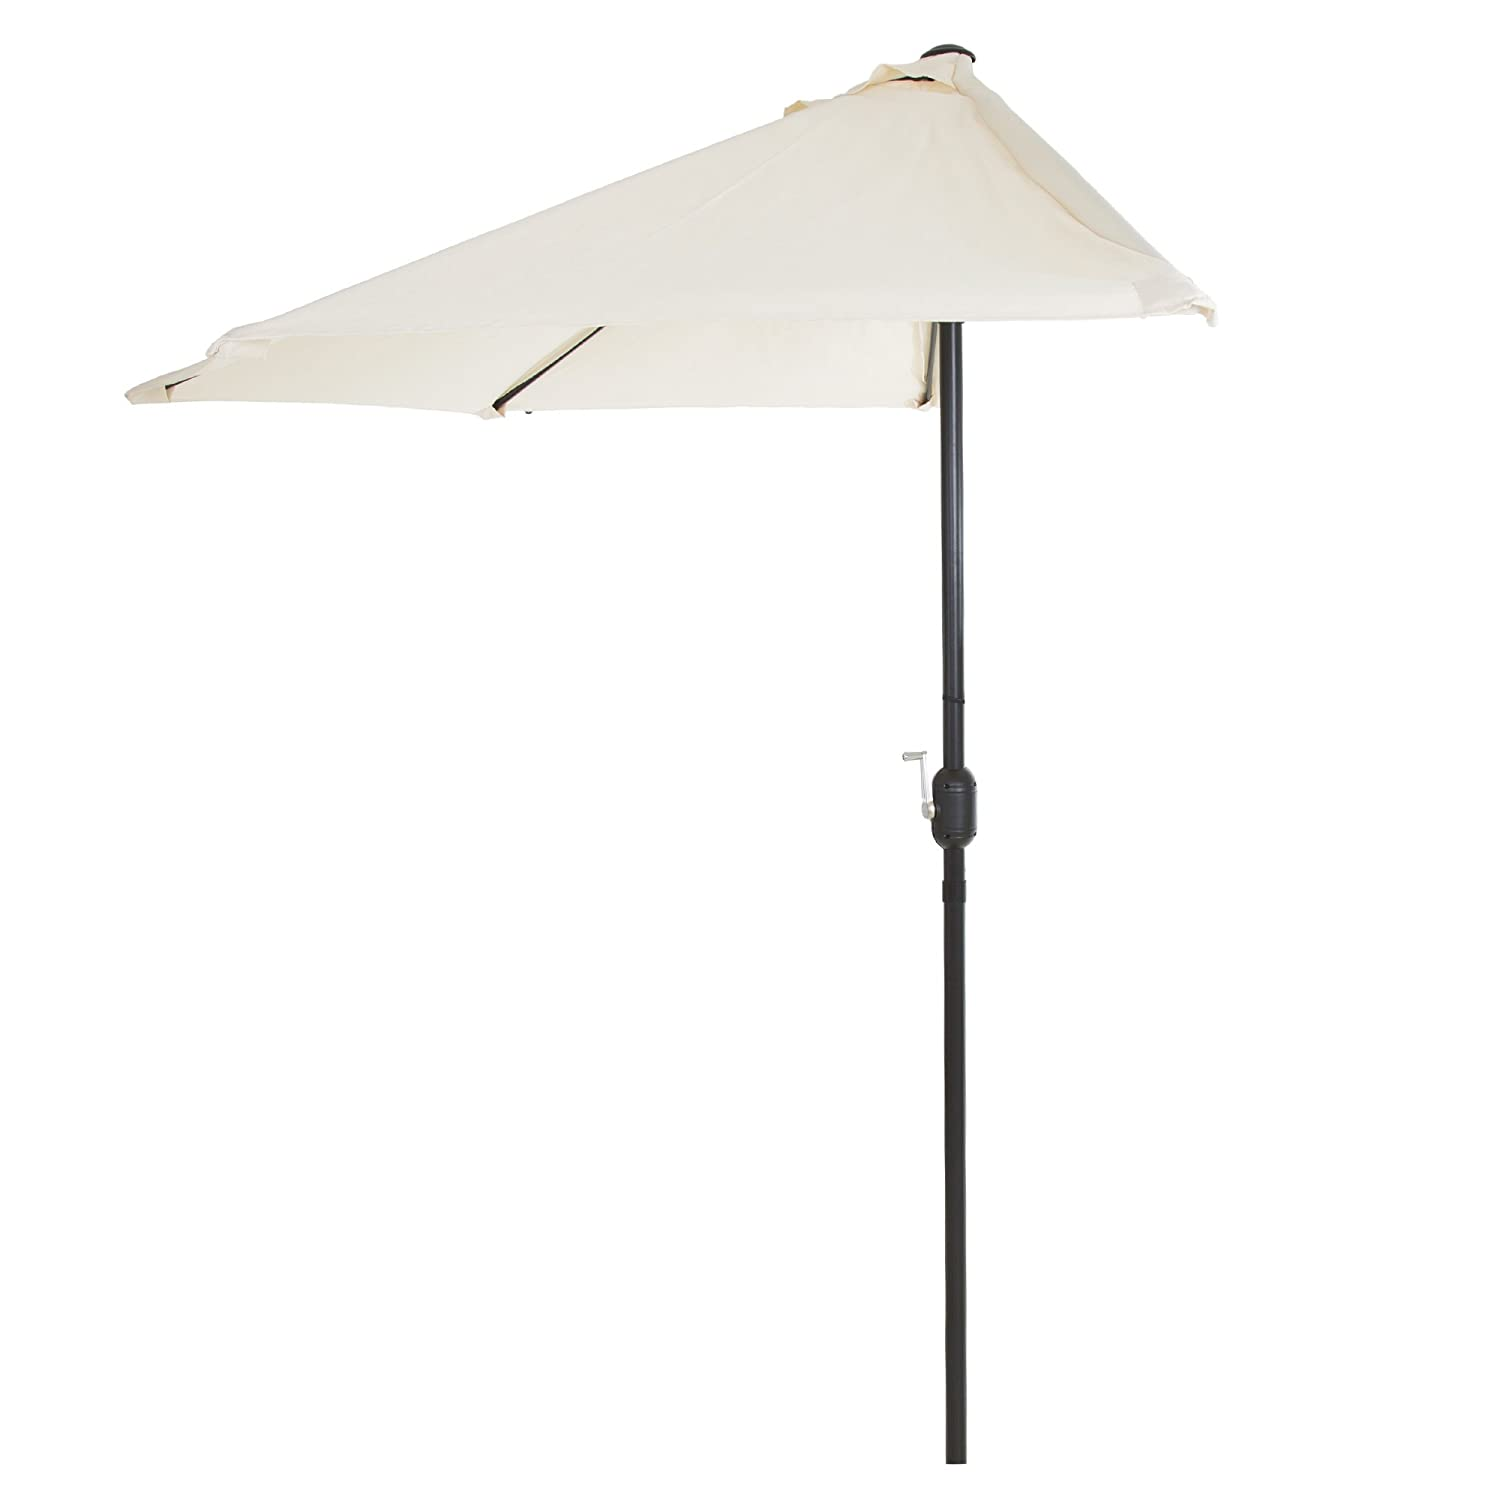 Pure Garden 9 Half Round Patio Umbrella, Tan